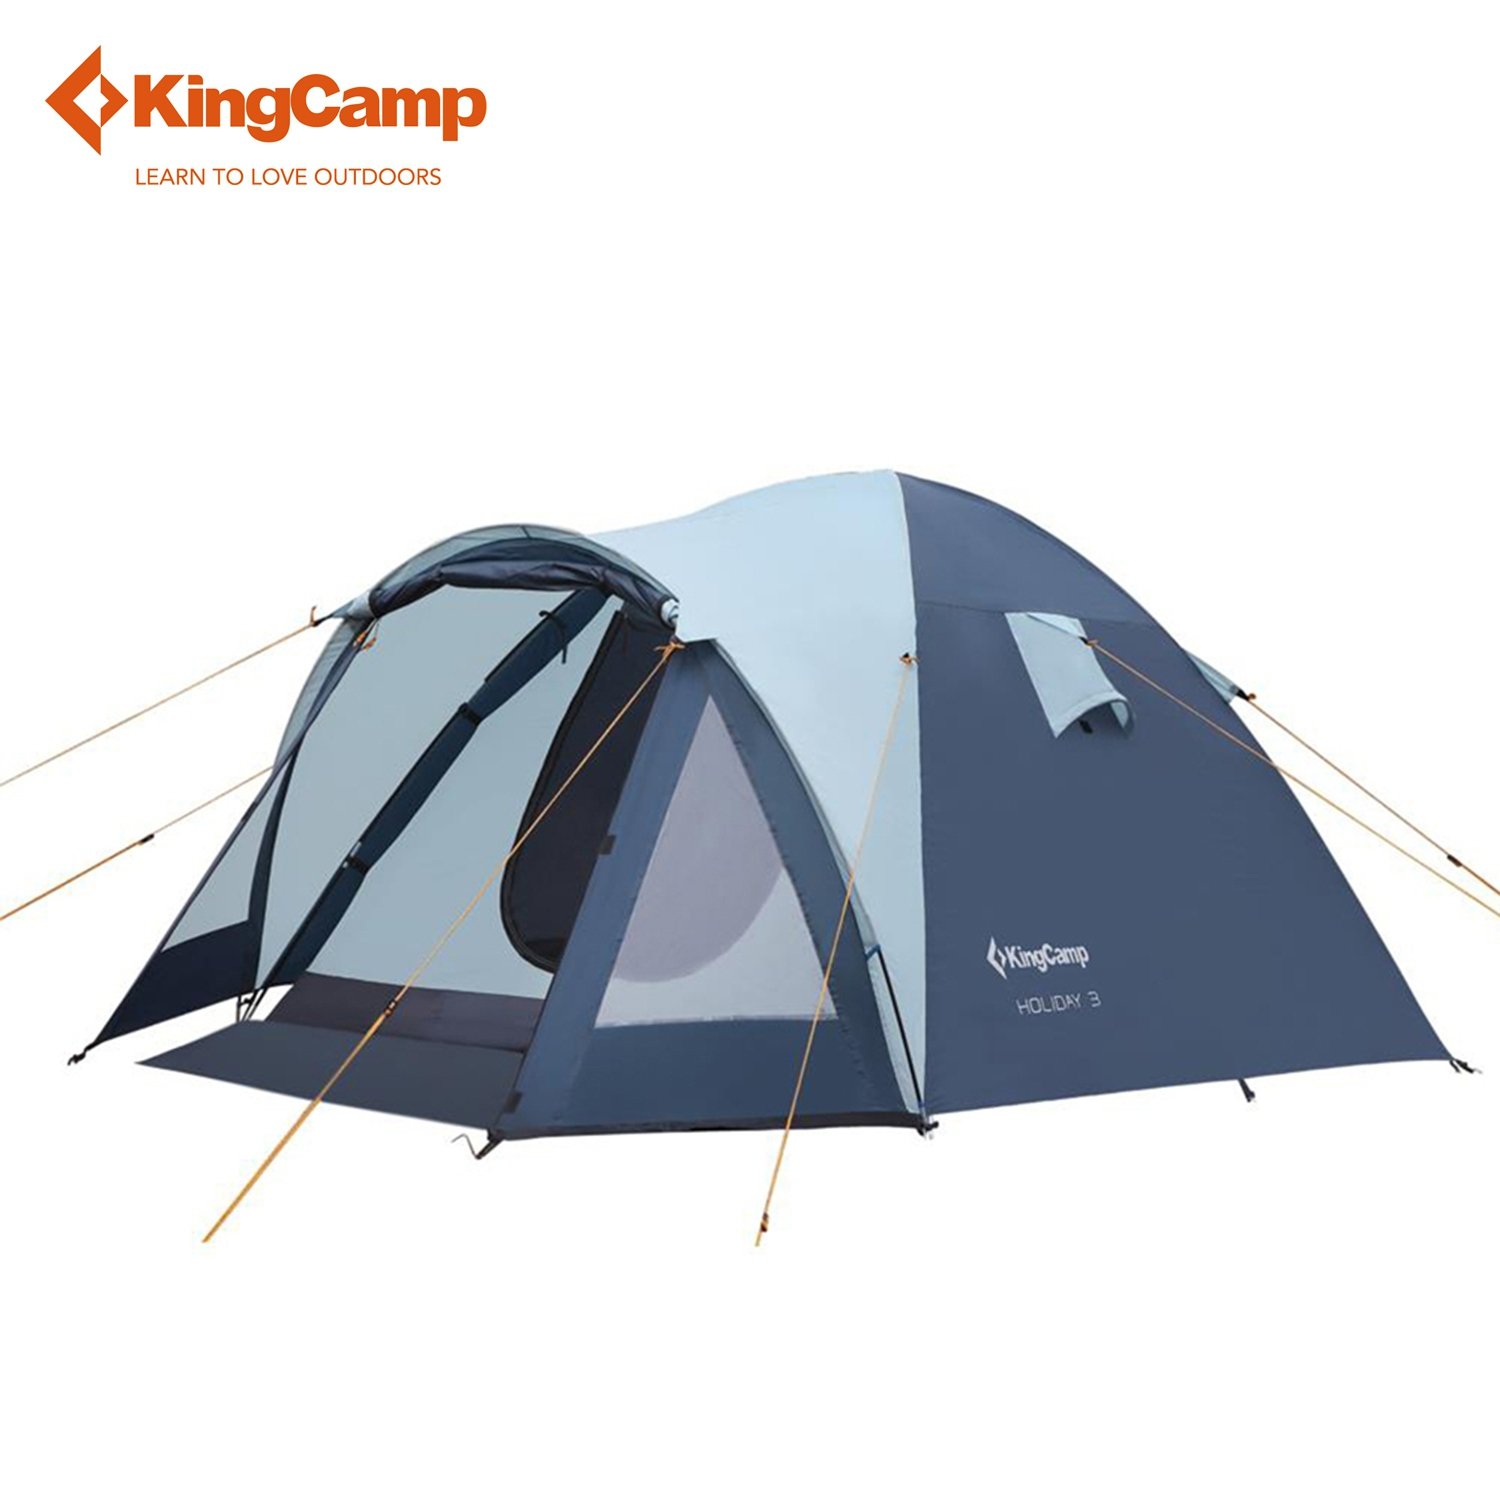 KingCamp Camping Tent Waterproof Holiday Fire-resistant 4-Person,3-Season Outdoor Tent for Family Camping fast acu pj carbon style vented airsoft tactical helmet ops core style high cut training helmet fast ballistic style helmet